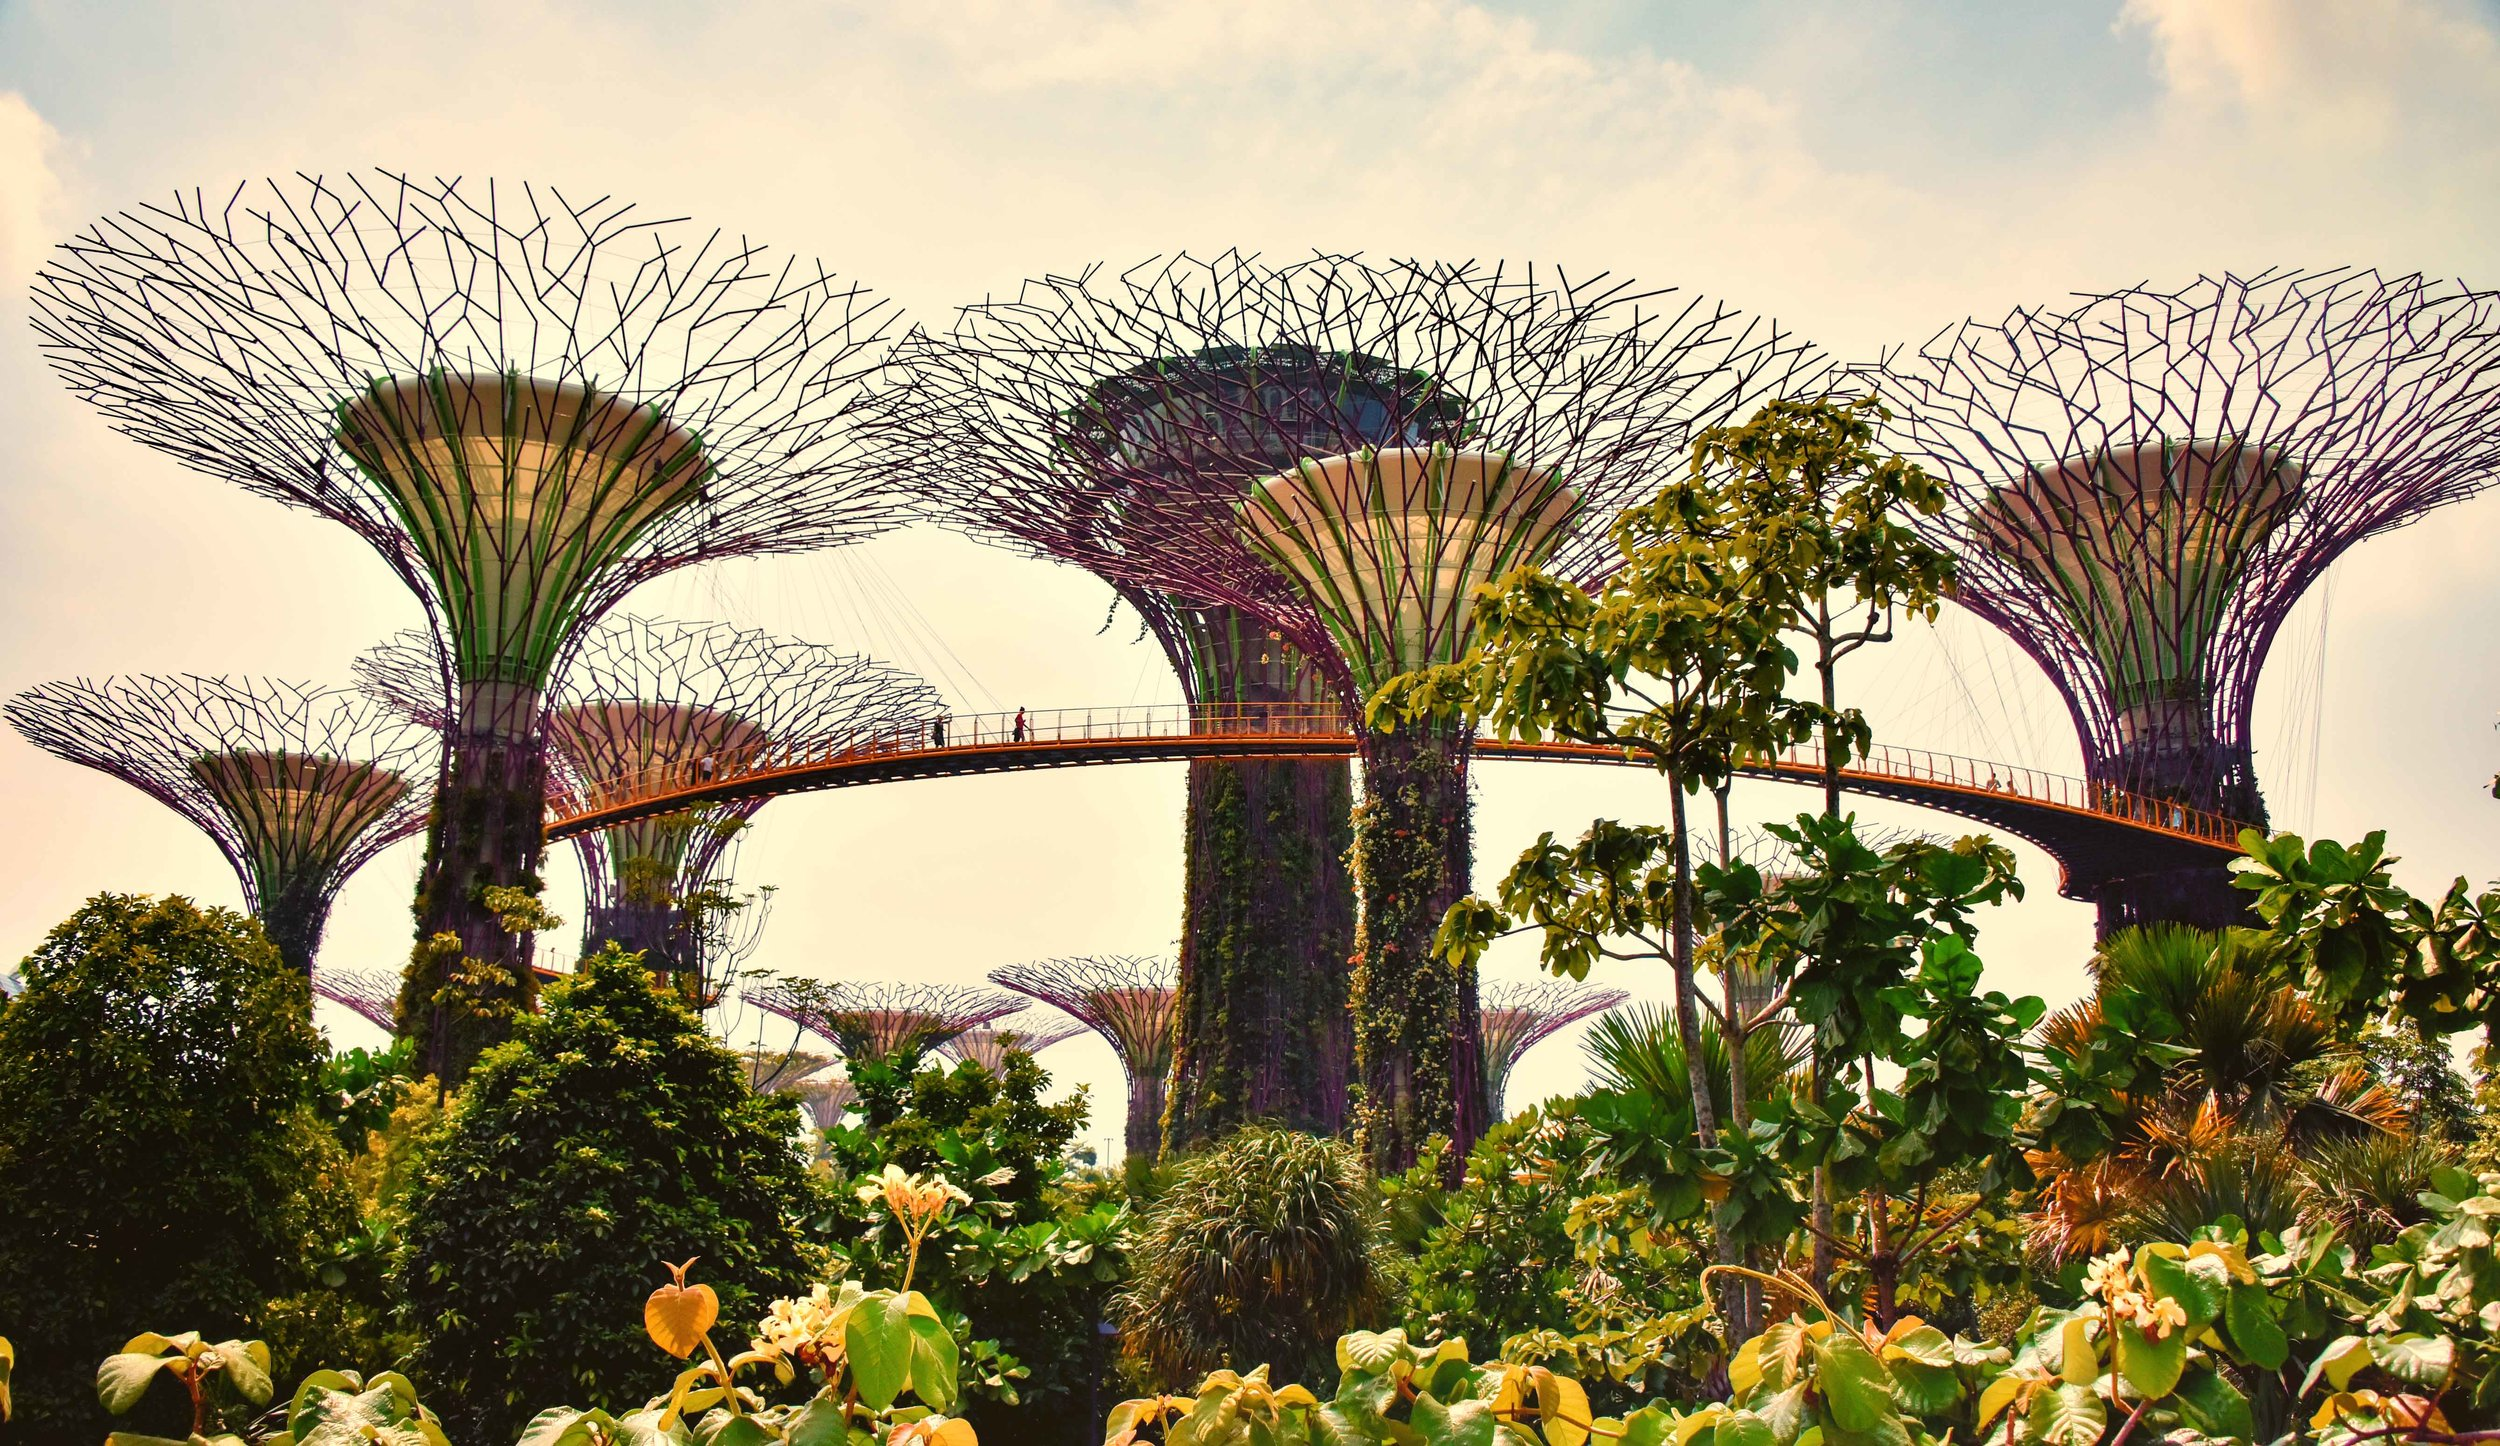 Singapore is the city-poster-child of biophilic design. Retrieved from  Wikimedia Commons , Jan 10, 2019.